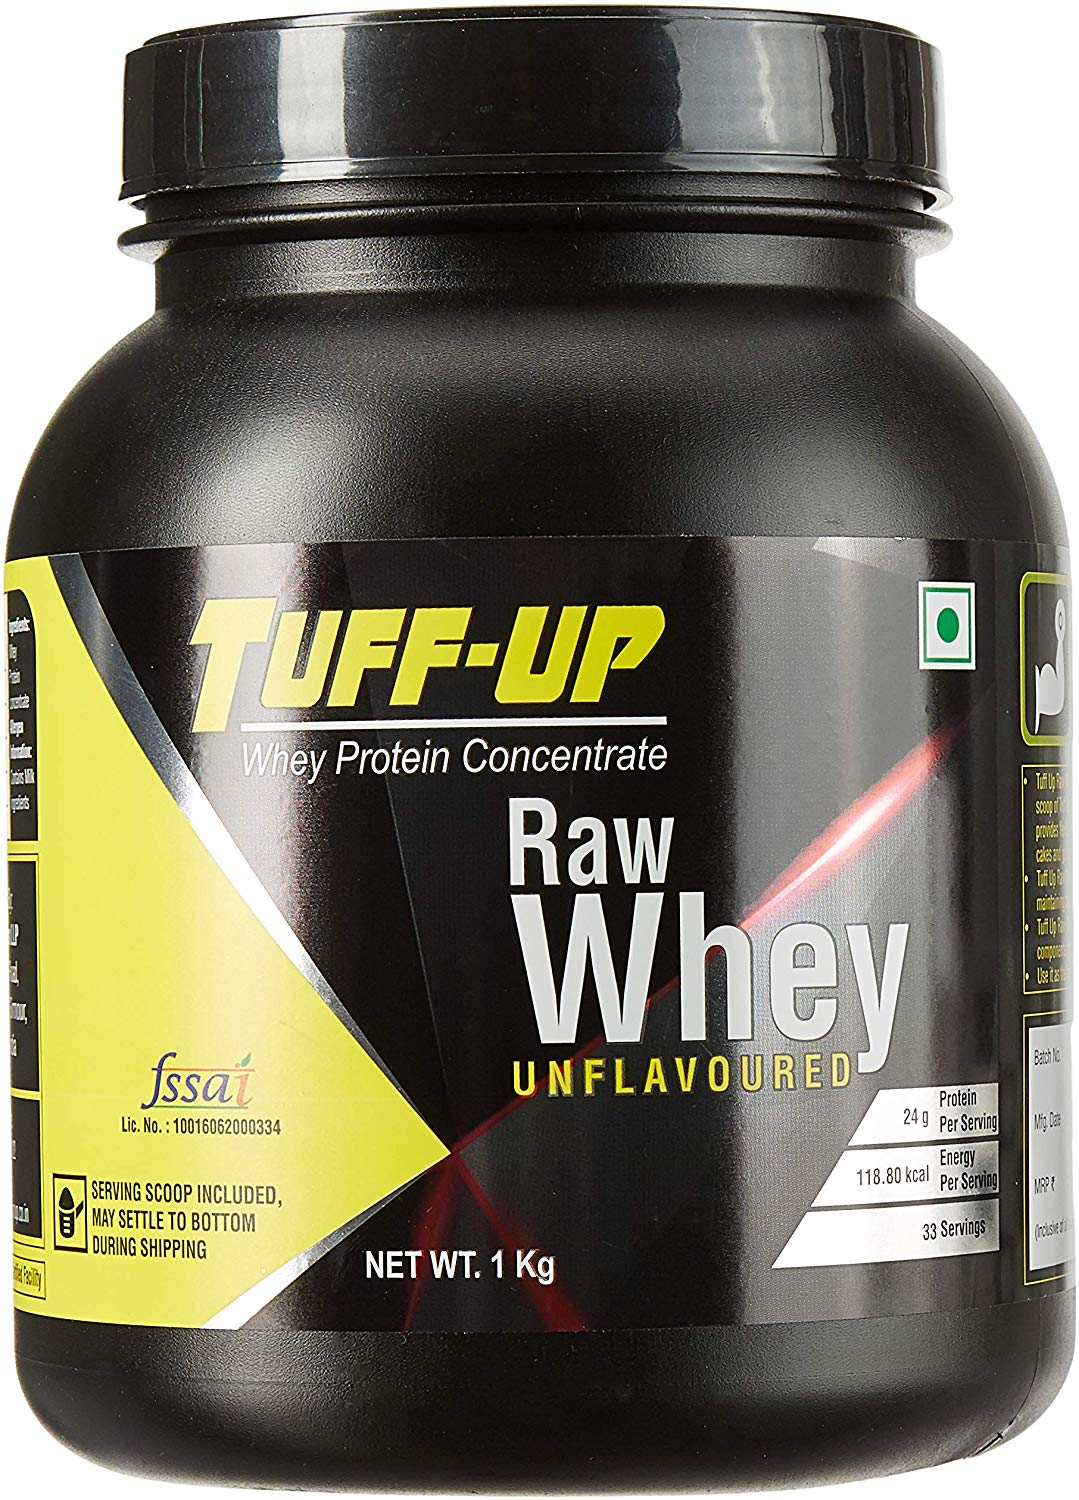 Tuff Up Raw Whey Protein Concentrate